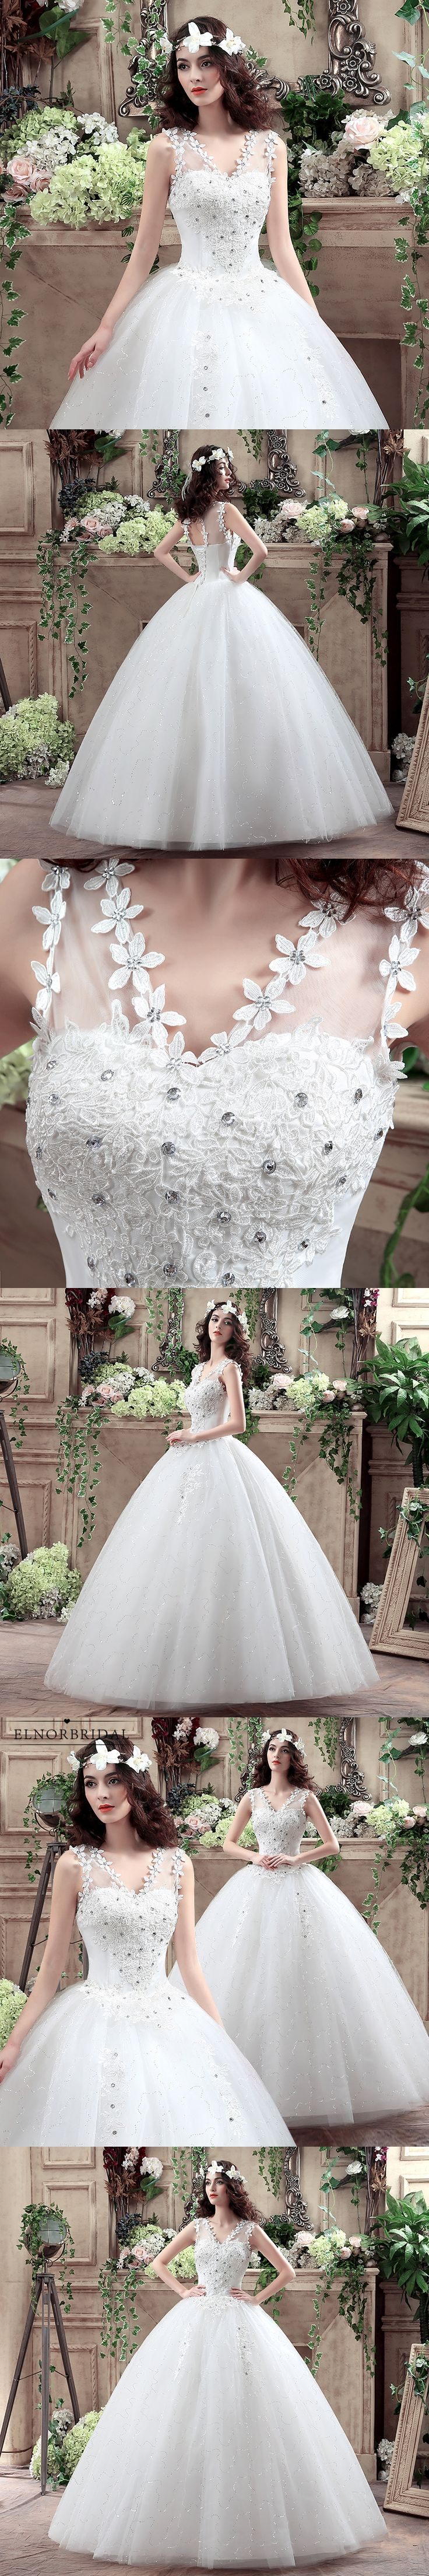 2018 Romantic Ball Gown Wedding Dresses Lace Vestido De Novia V Neck Vestito Sposa Corset Back Bridal Gowns For Garden